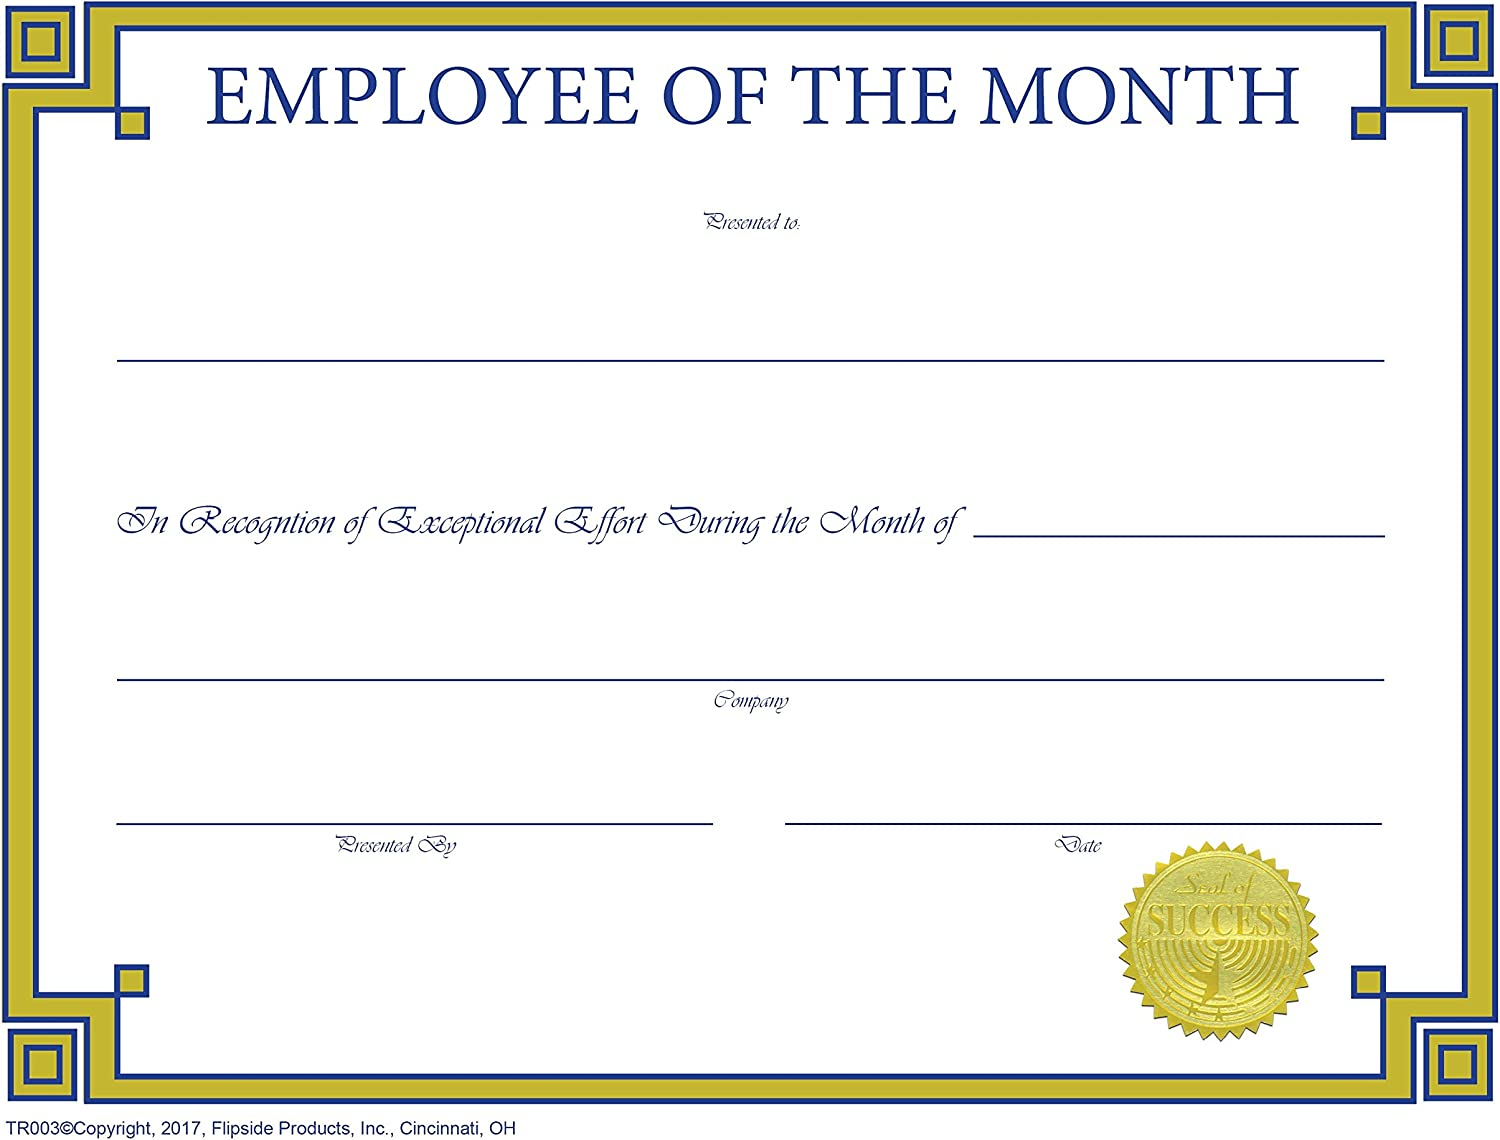 Employee of The Month Certificate Fees free!! Matte Traditional - Rare Pap Series